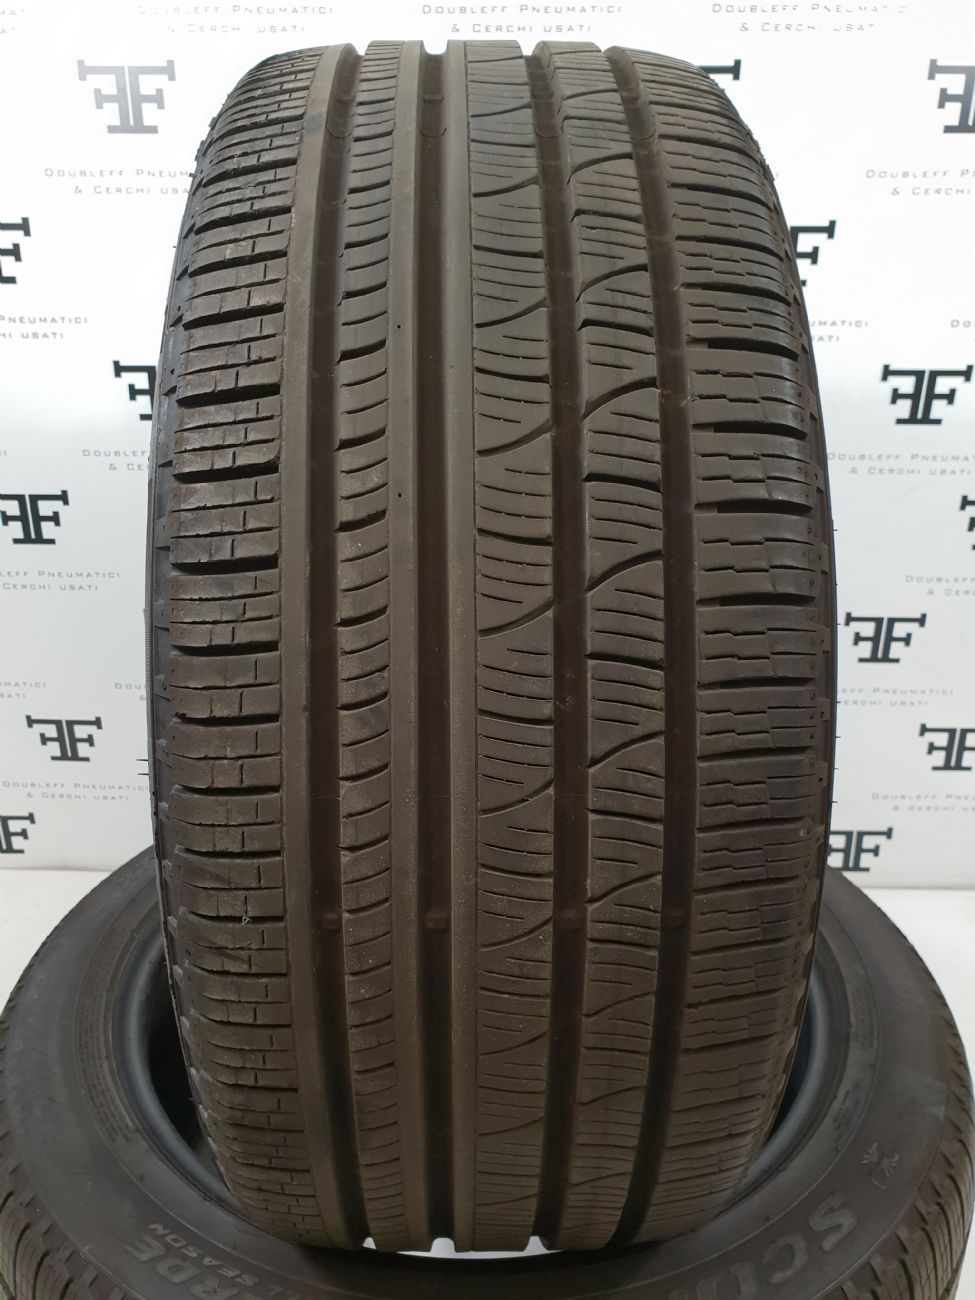 Pneumatici 275 40 R22 108 Y PIRELLI SCORPION VERDE ALL SEASON 4 seasons usati 220€